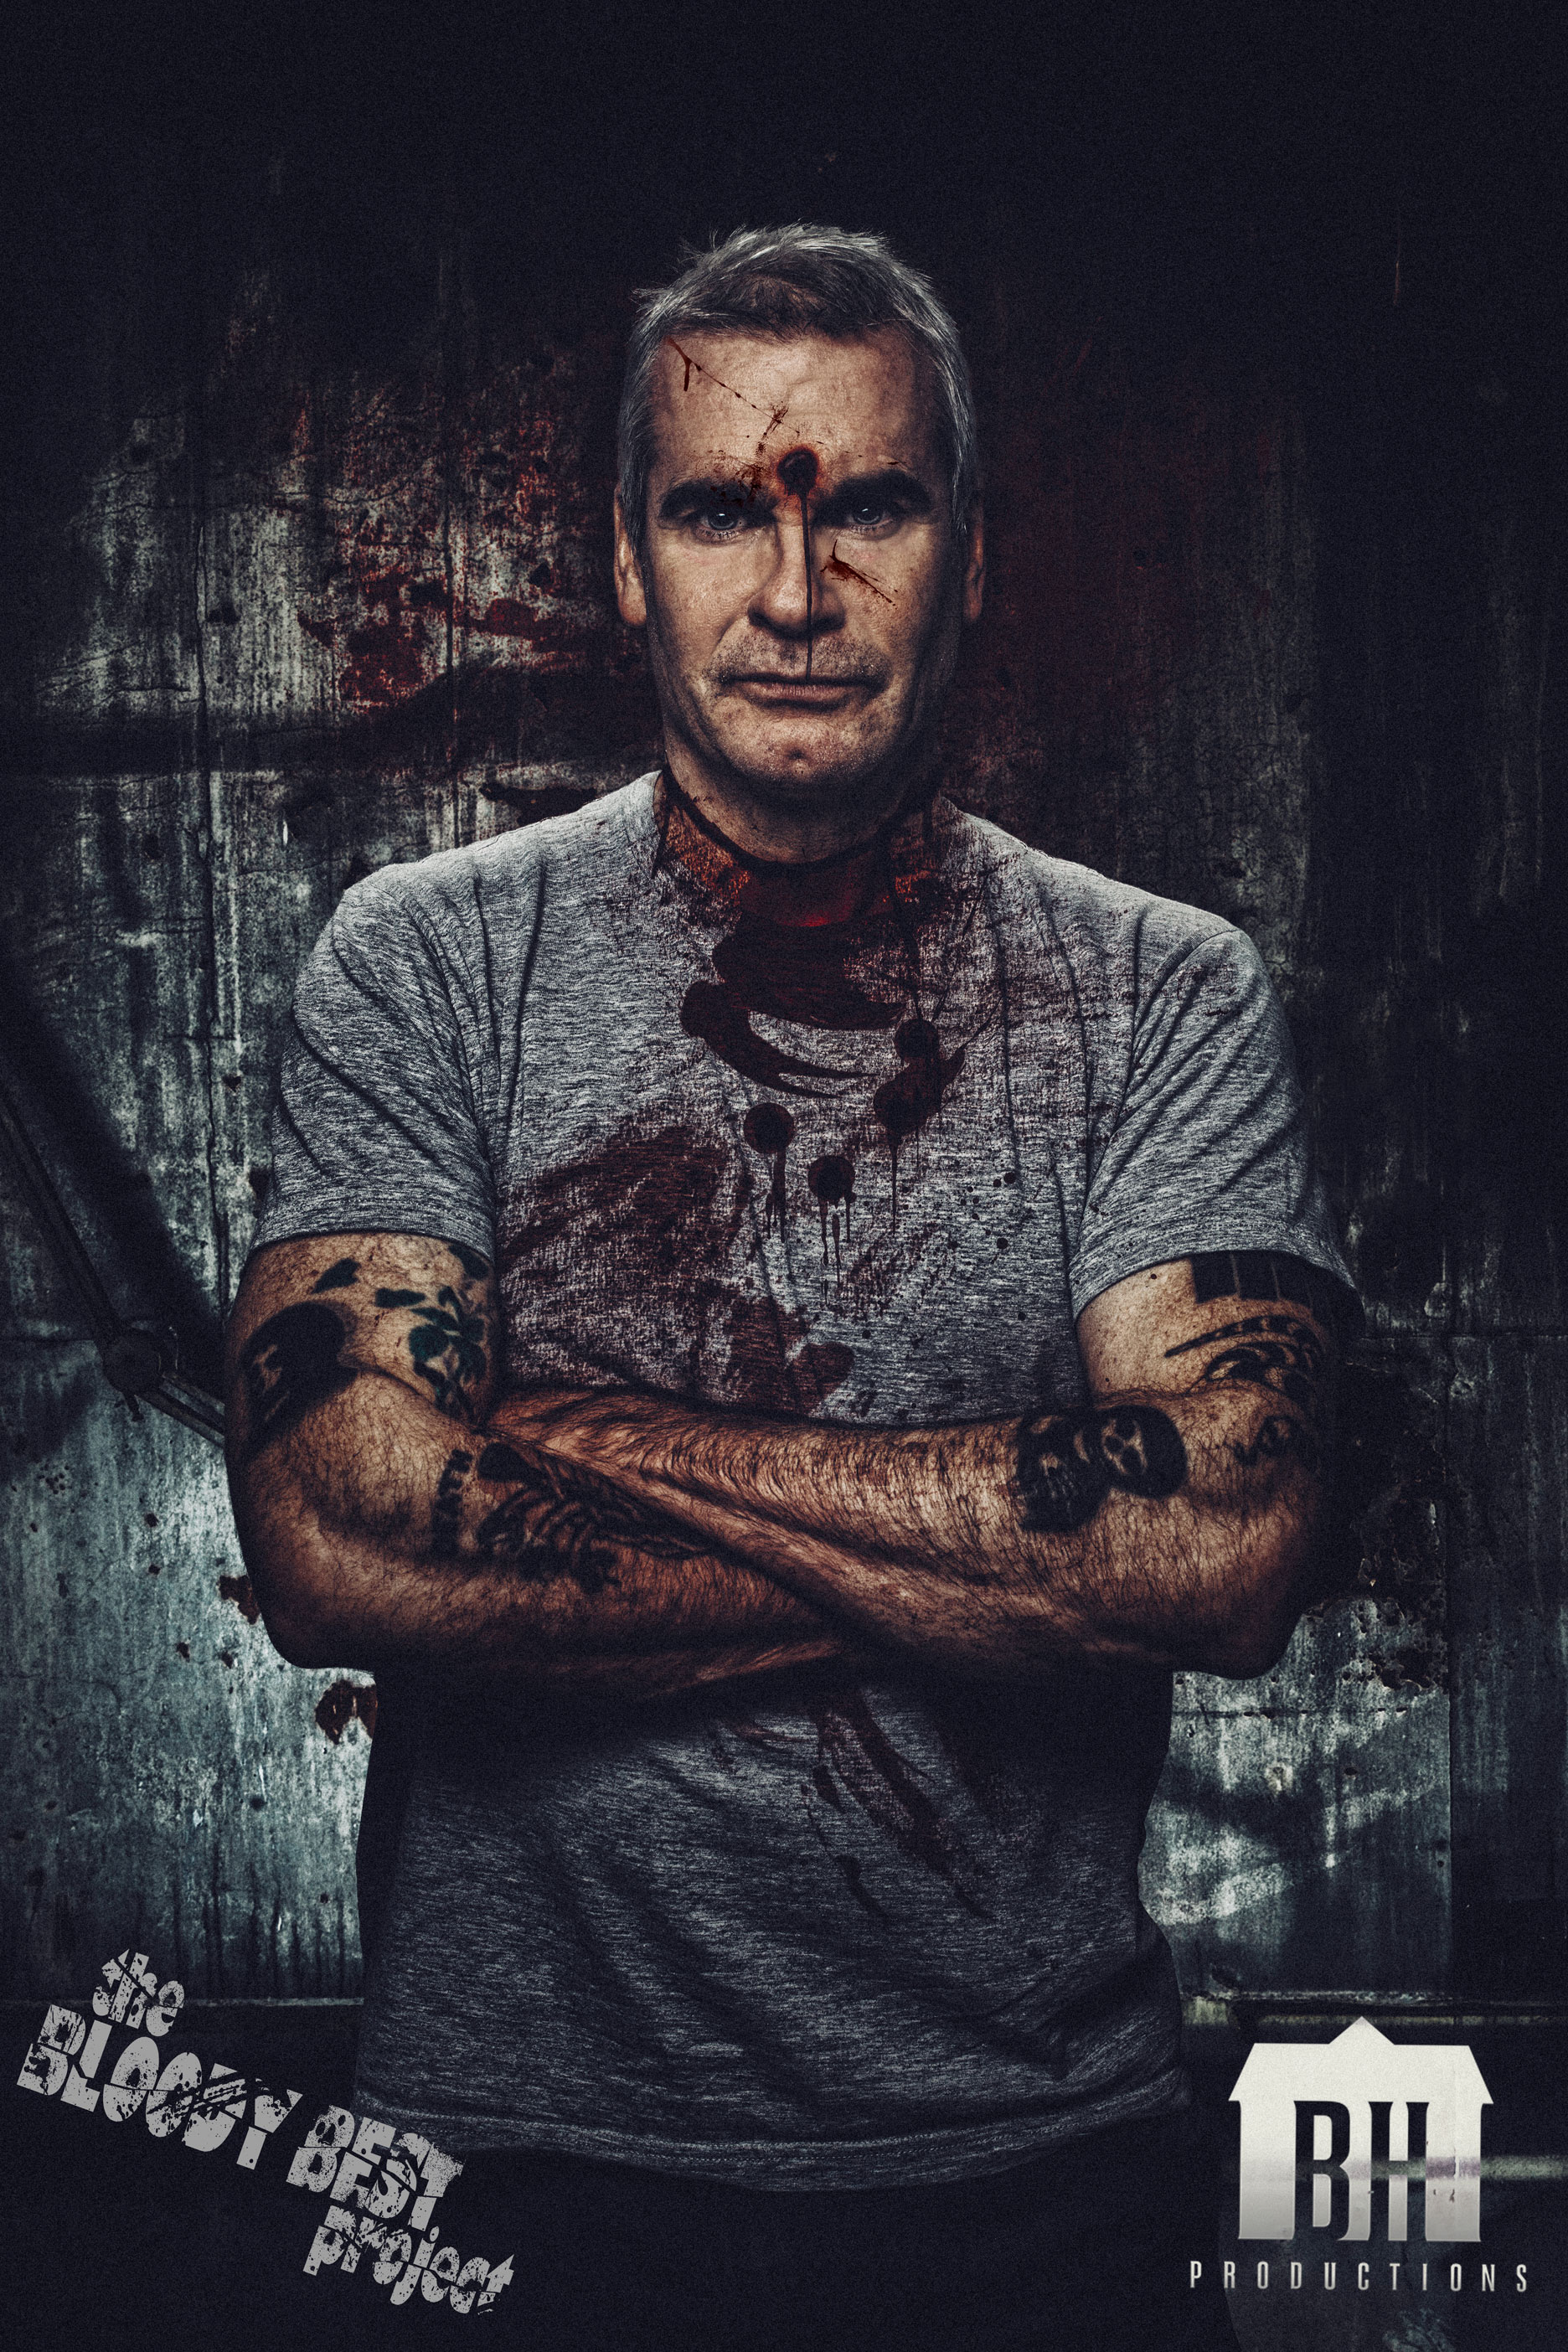 Interview With Henry Rollins of HE NEVER DIED – The 13th Floor